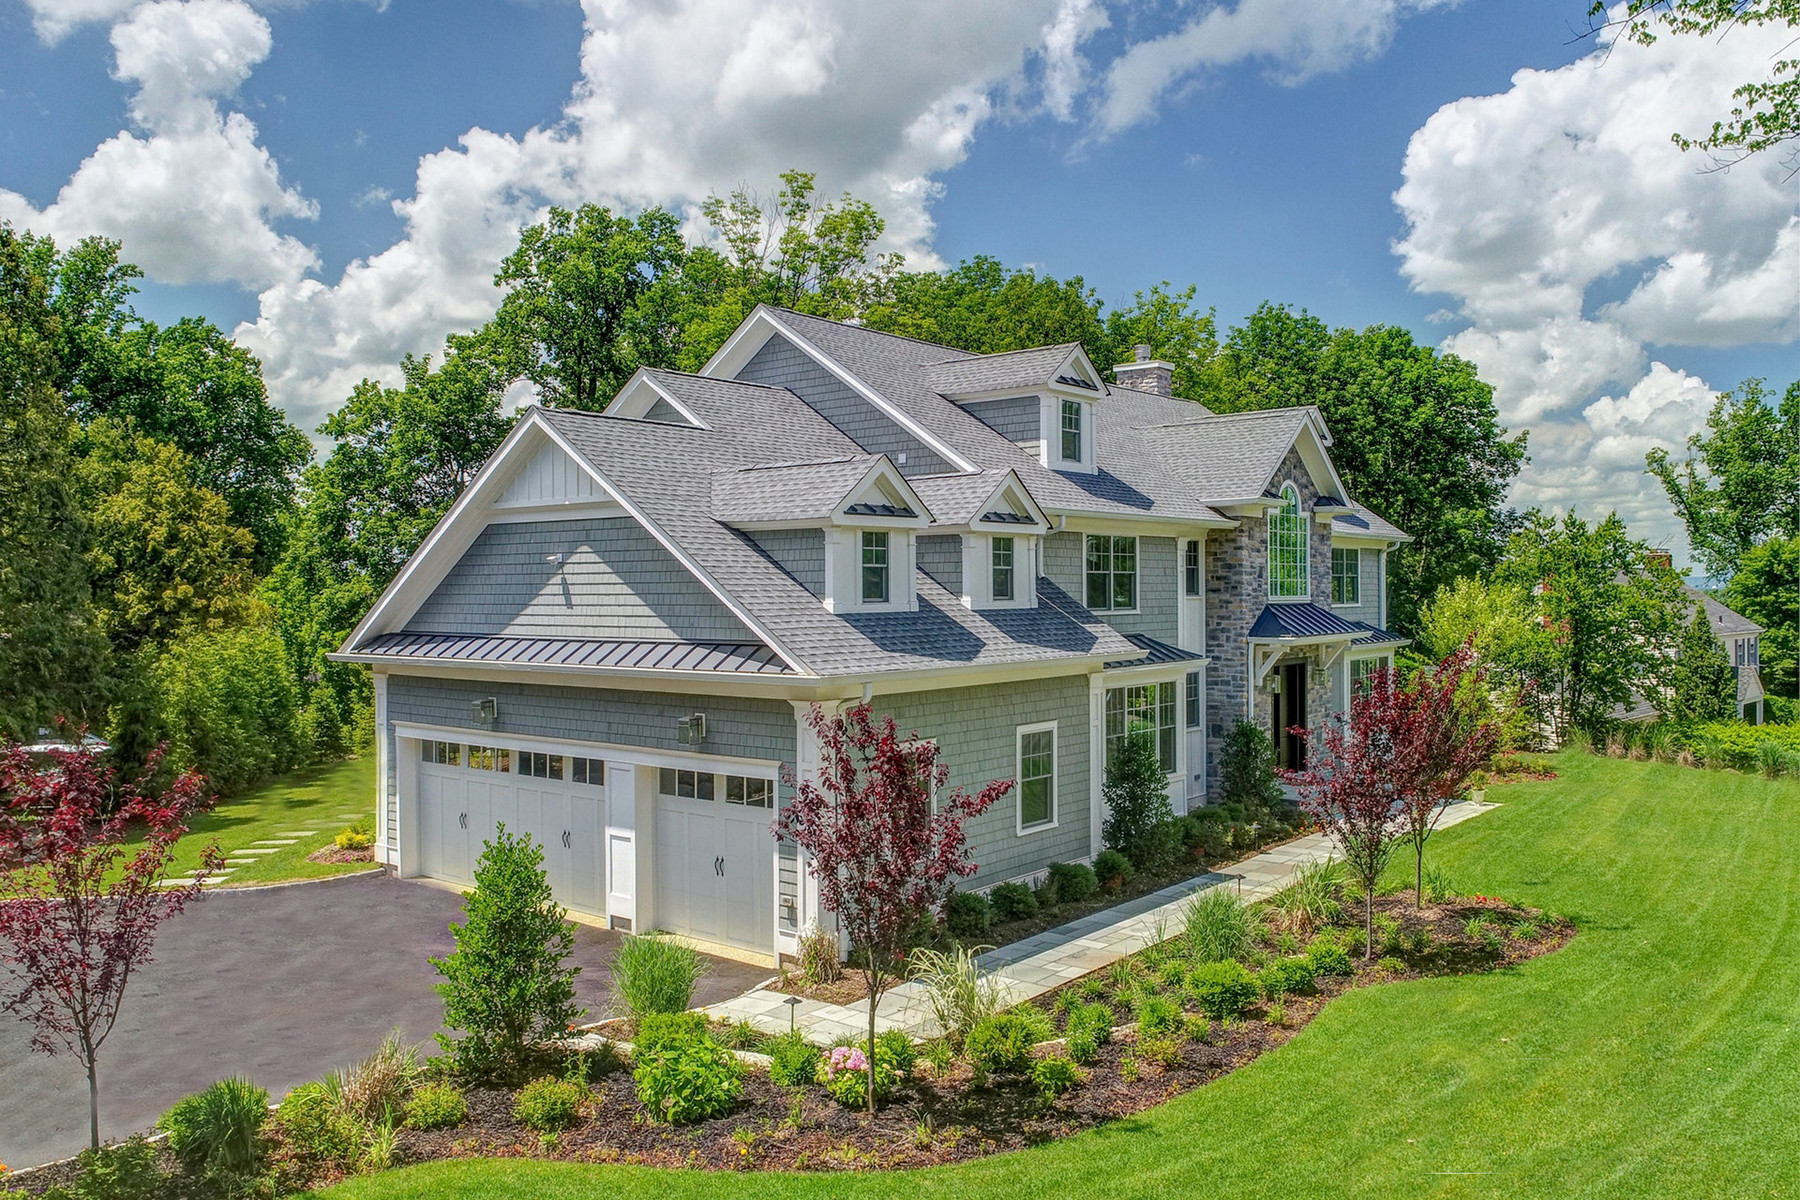 Single Family Home for Sale at New Construction Above the Competition 7 Saratoga Way, Short Hills, New Jersey 07078 United States